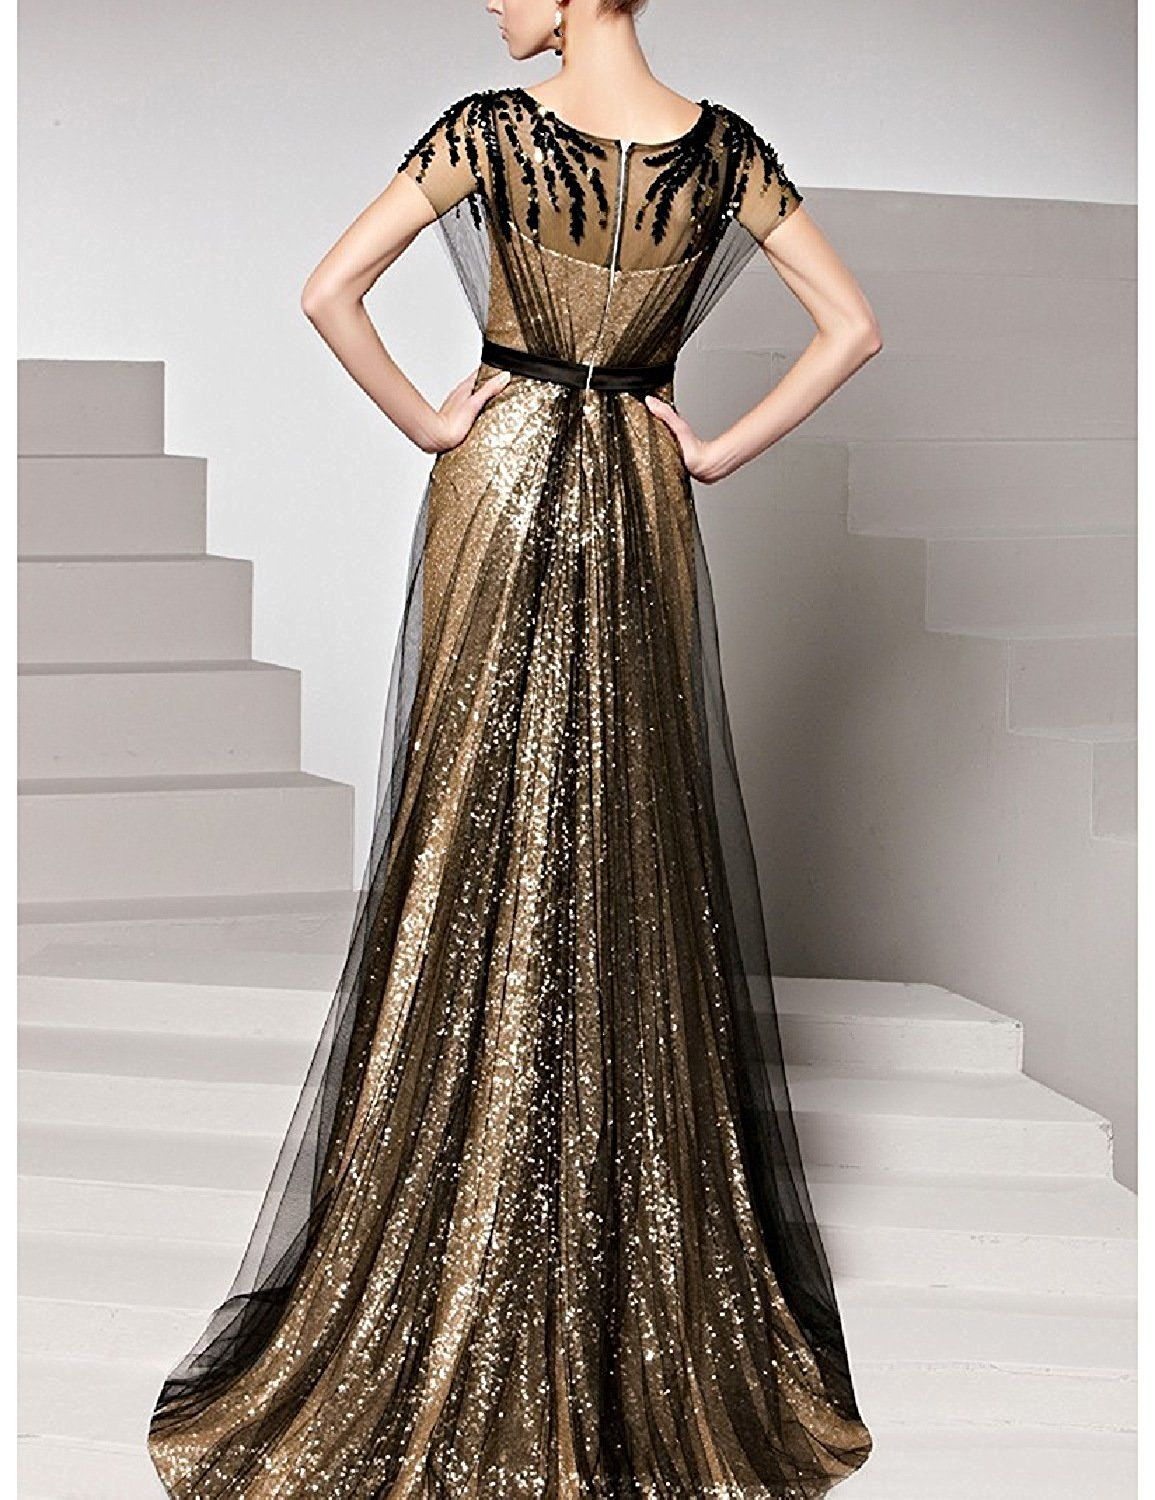 Dressvip gold sequined applique prom dress for women with black